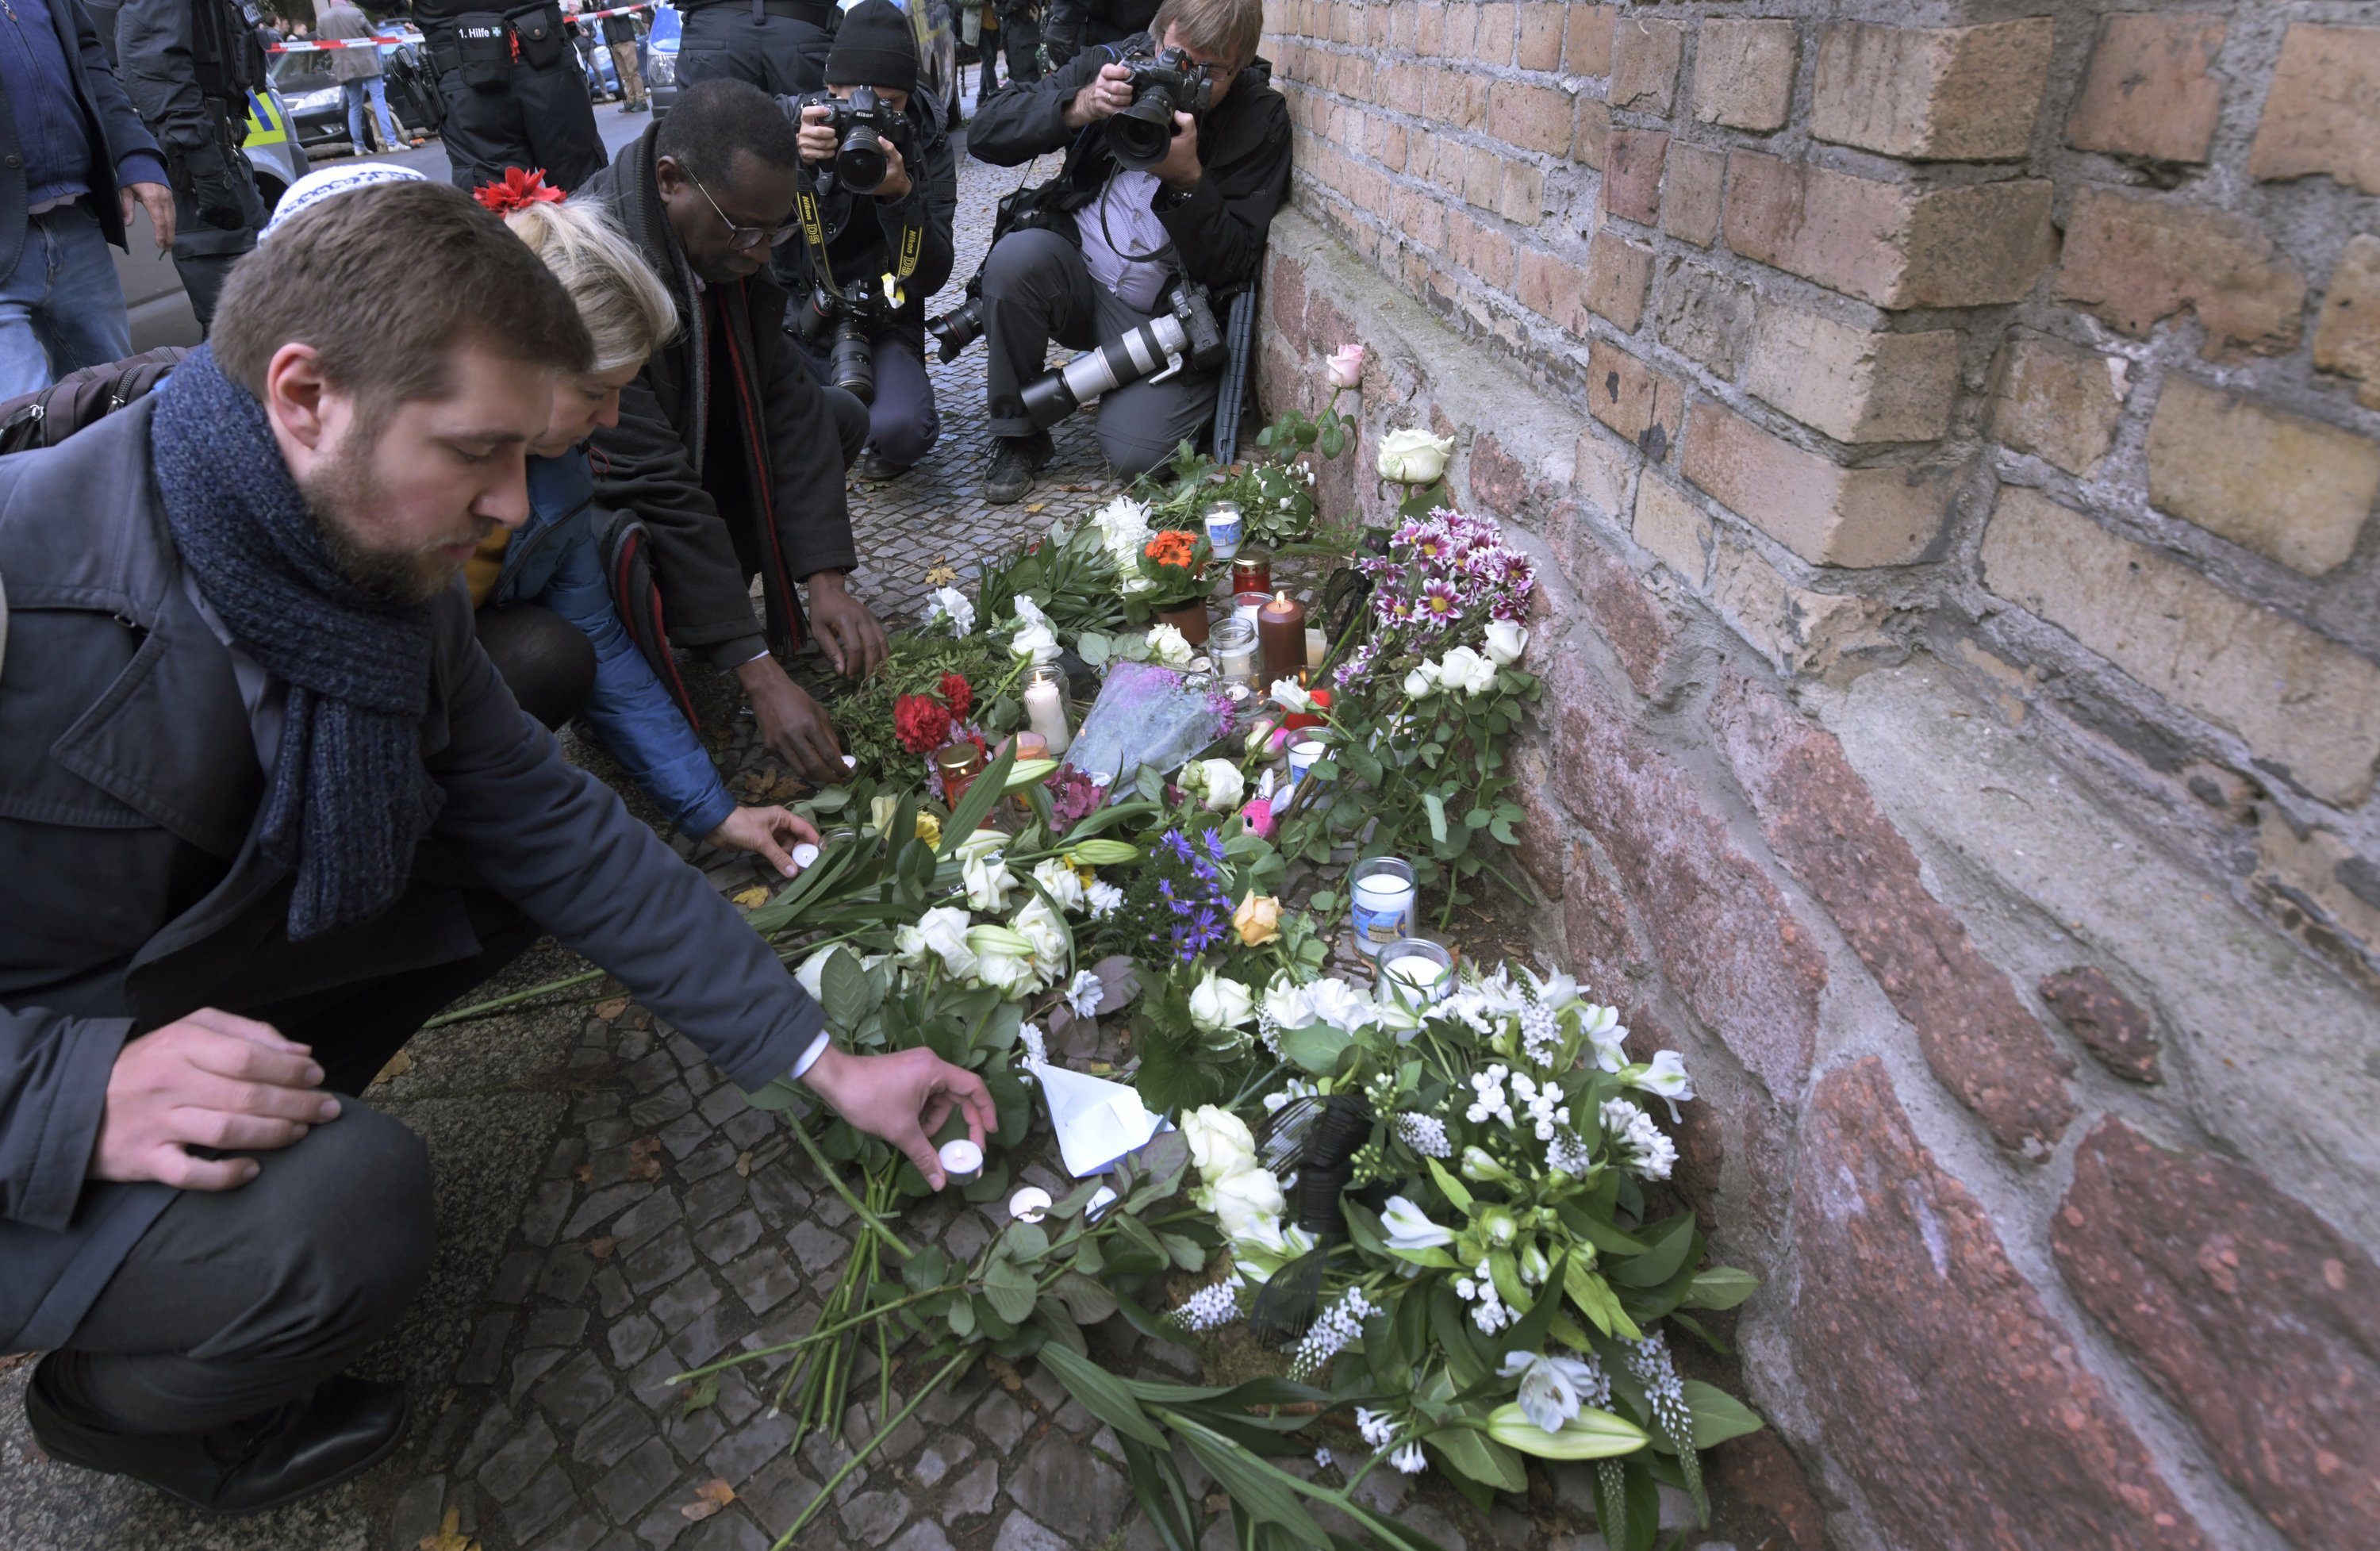 Germany probes synagogue suspect, pledges better security